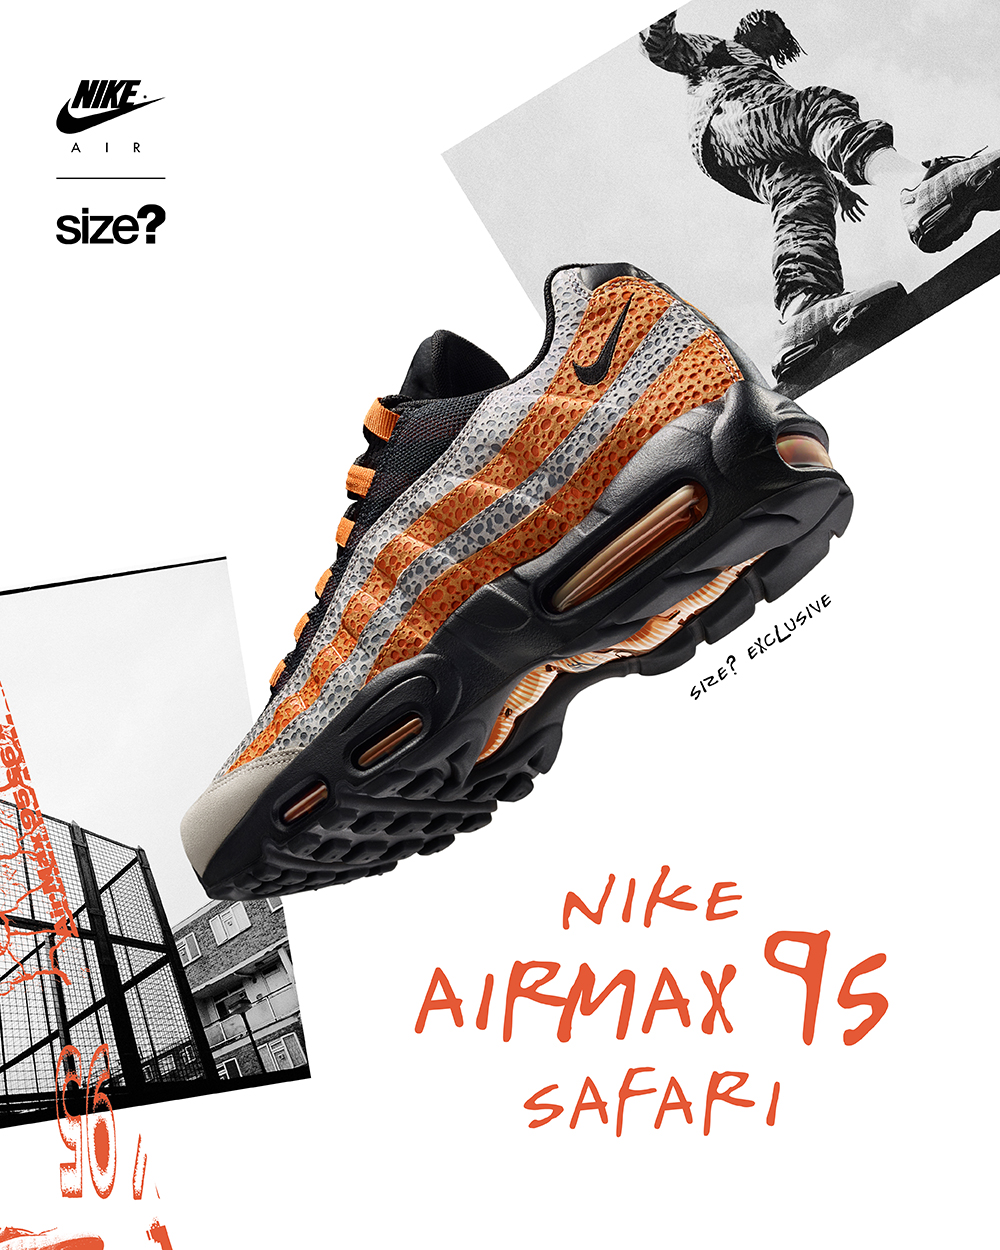 0ed3f3c1d5 ... sale size and nike get wild with the air max 95 safari 78ea8 36369